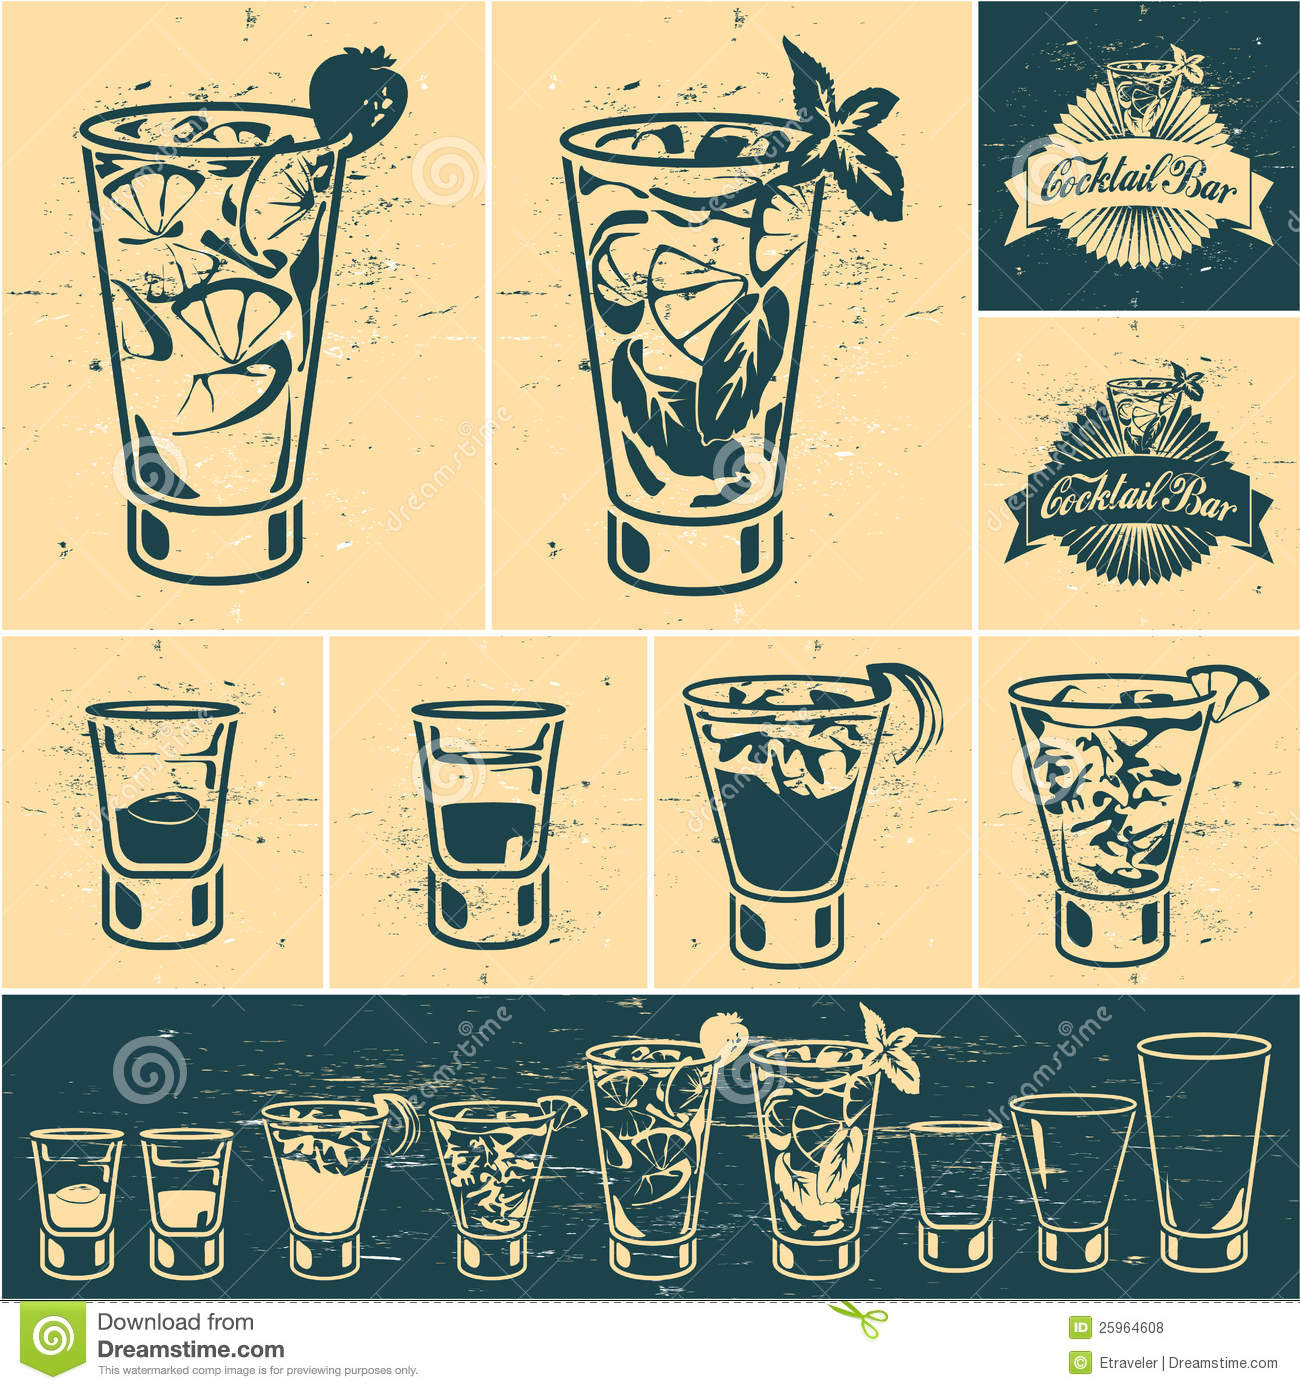 Vintage Cocktails Collection Stock Vector - Illustration of